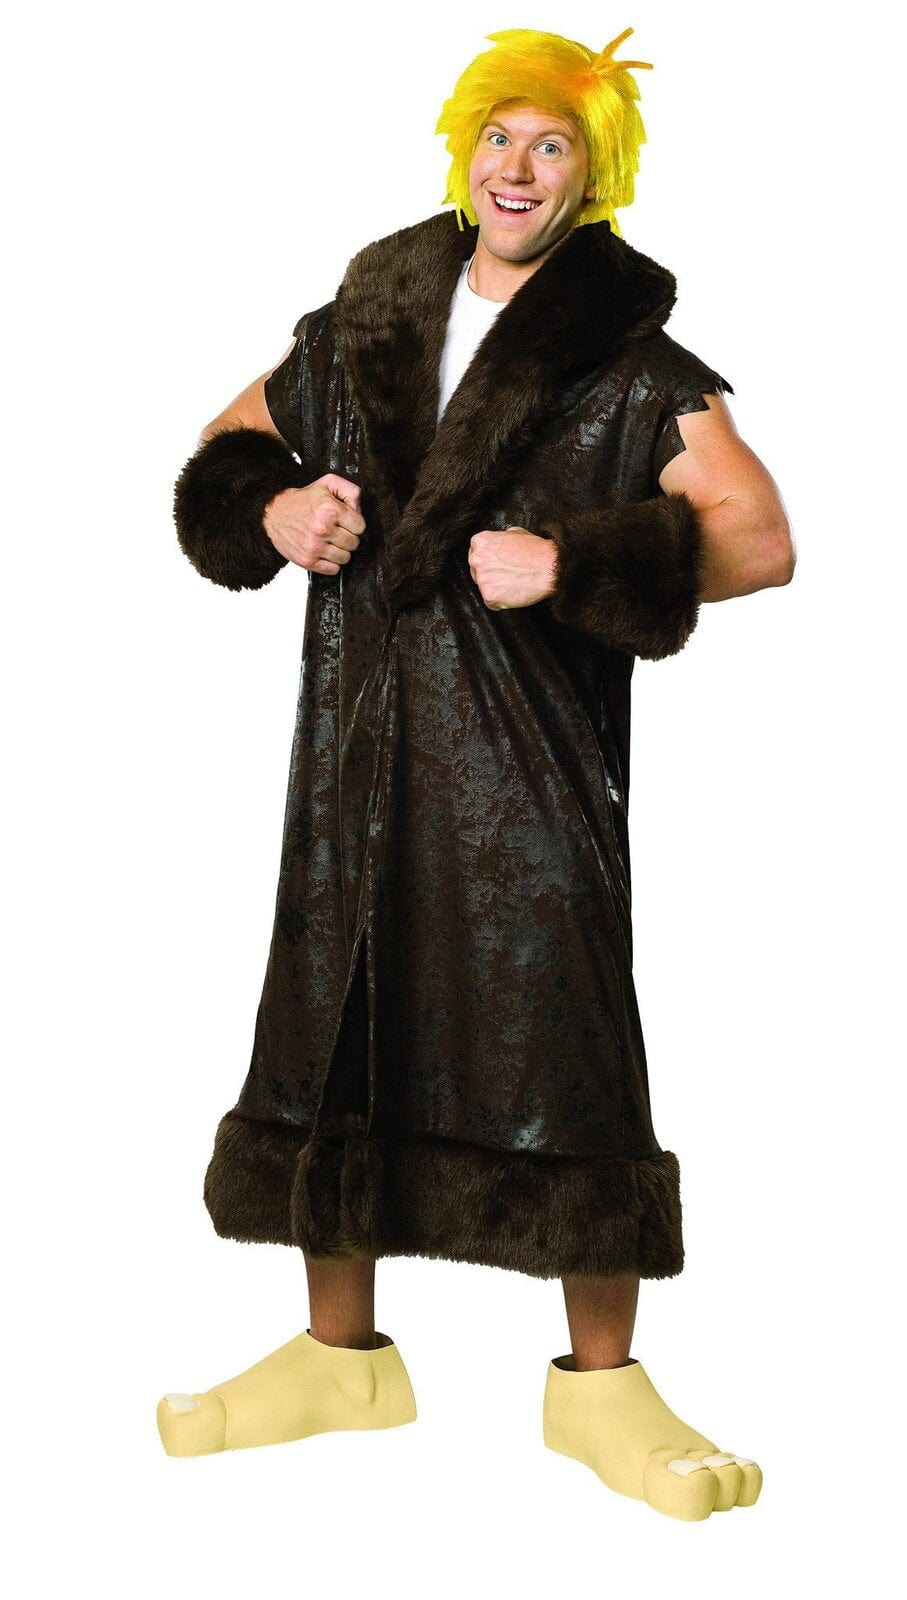 Barney Rubble Deluxe Plus Size The Flintstones Costume - Buy Online Only